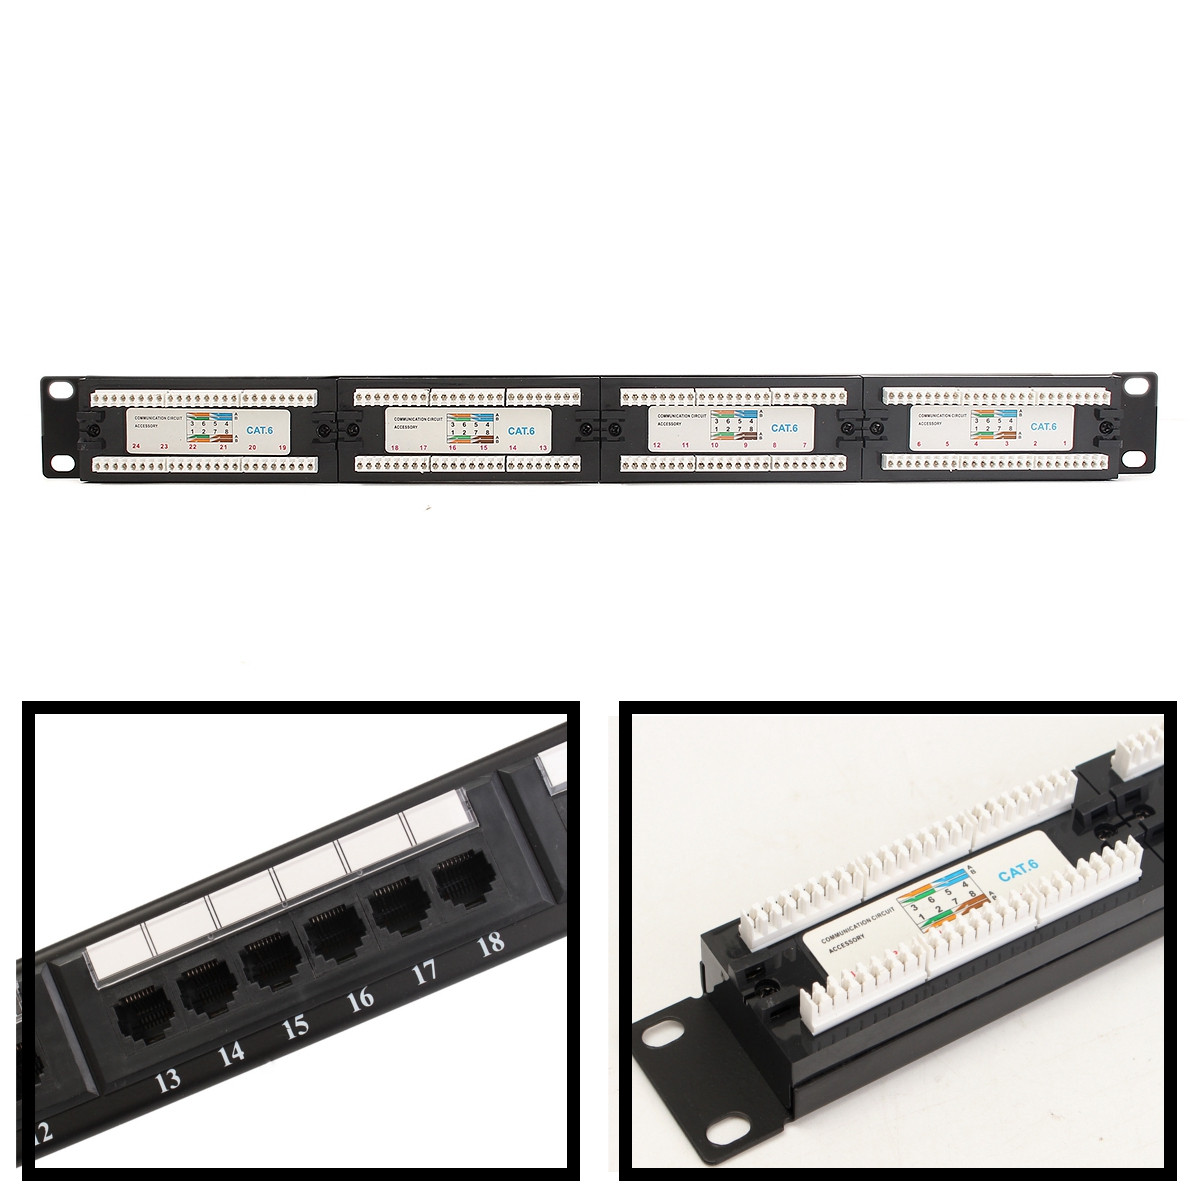 Cat6 24 Port Rj45 110 Network Mini Patch Panel 1u 1ru W Wall Mount Cable Networking Wiring Block Jack Ebay Detail Image